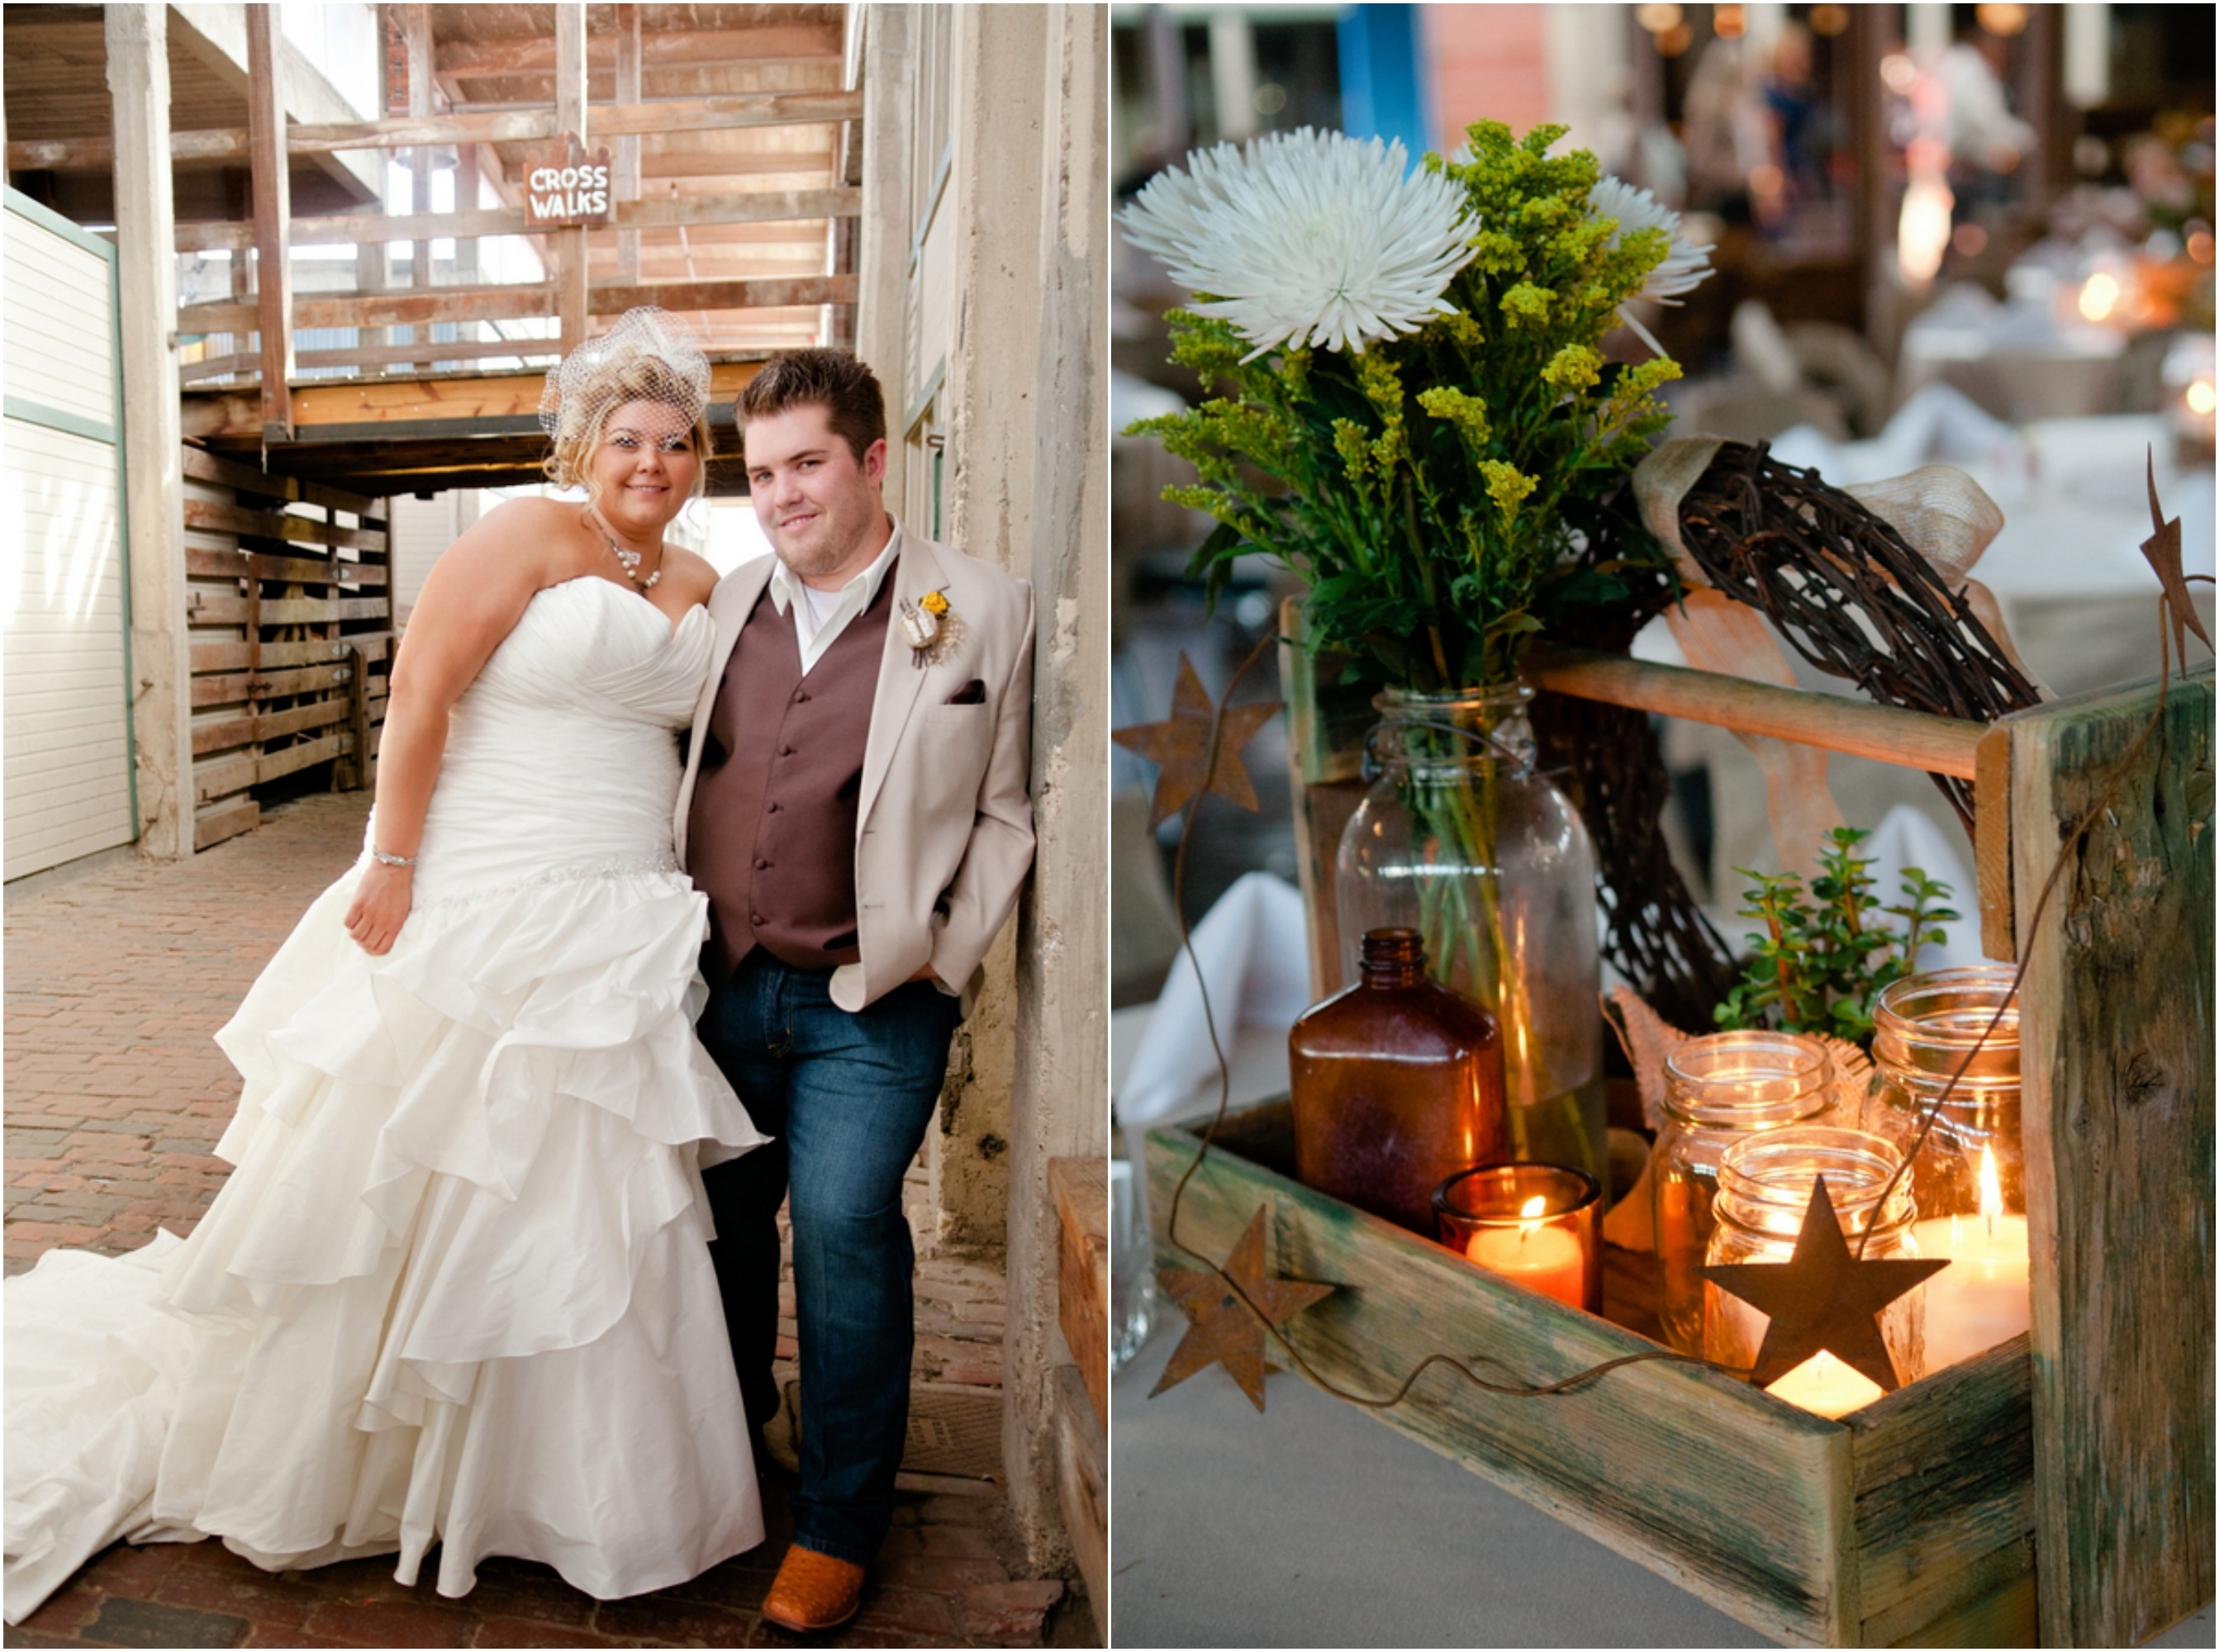 Texas Country Wedding With Vintage Decorations  Rustic Wedding Chic